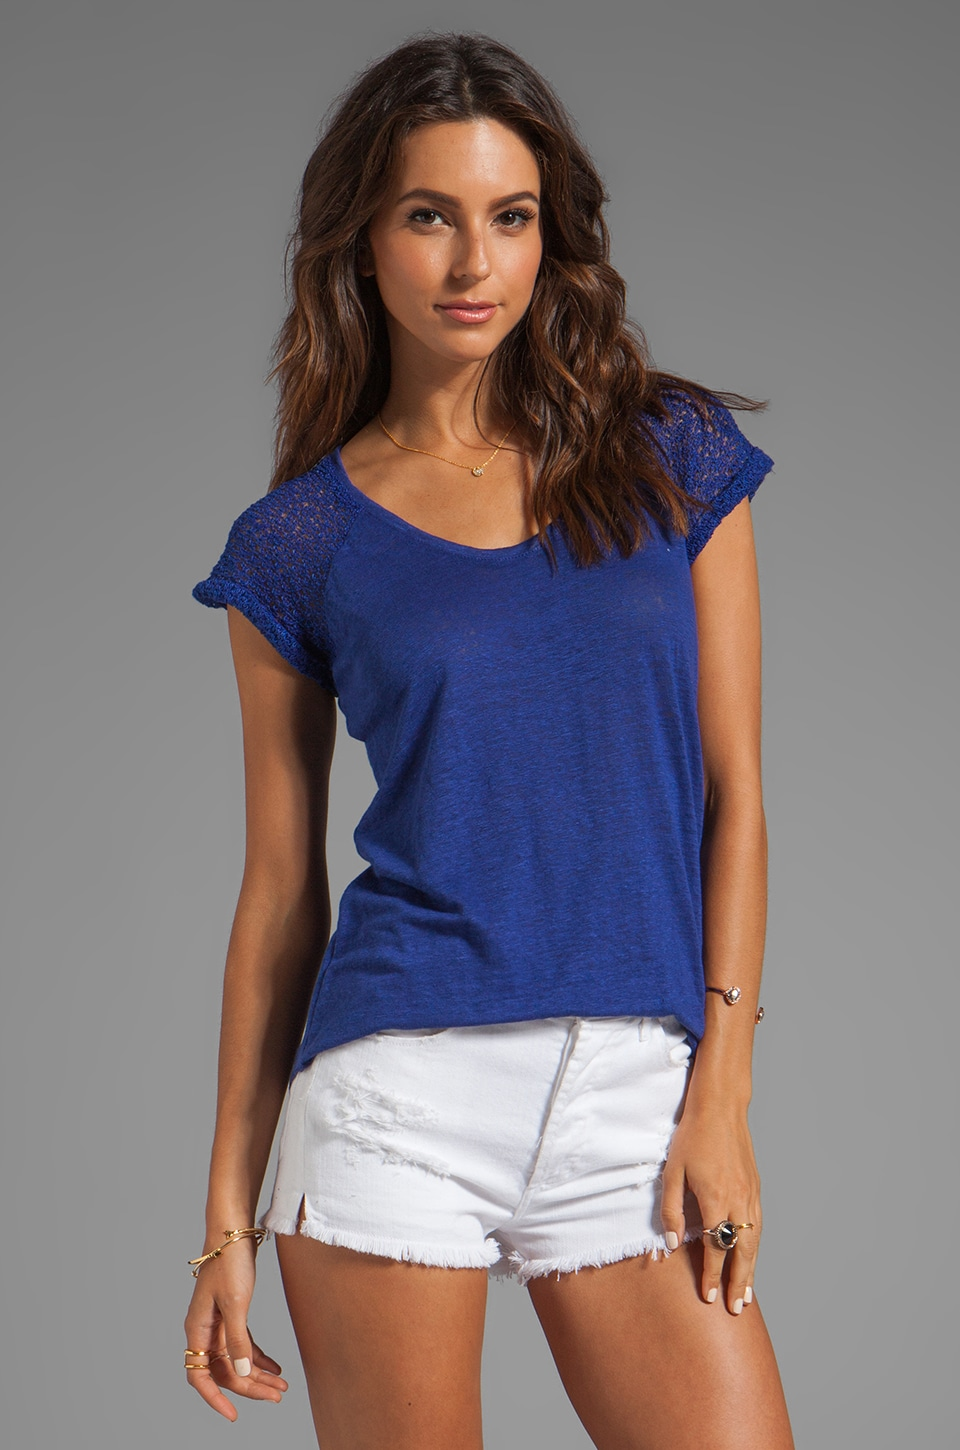 Generation Love Daniela Open Weave Top in Royal Blue